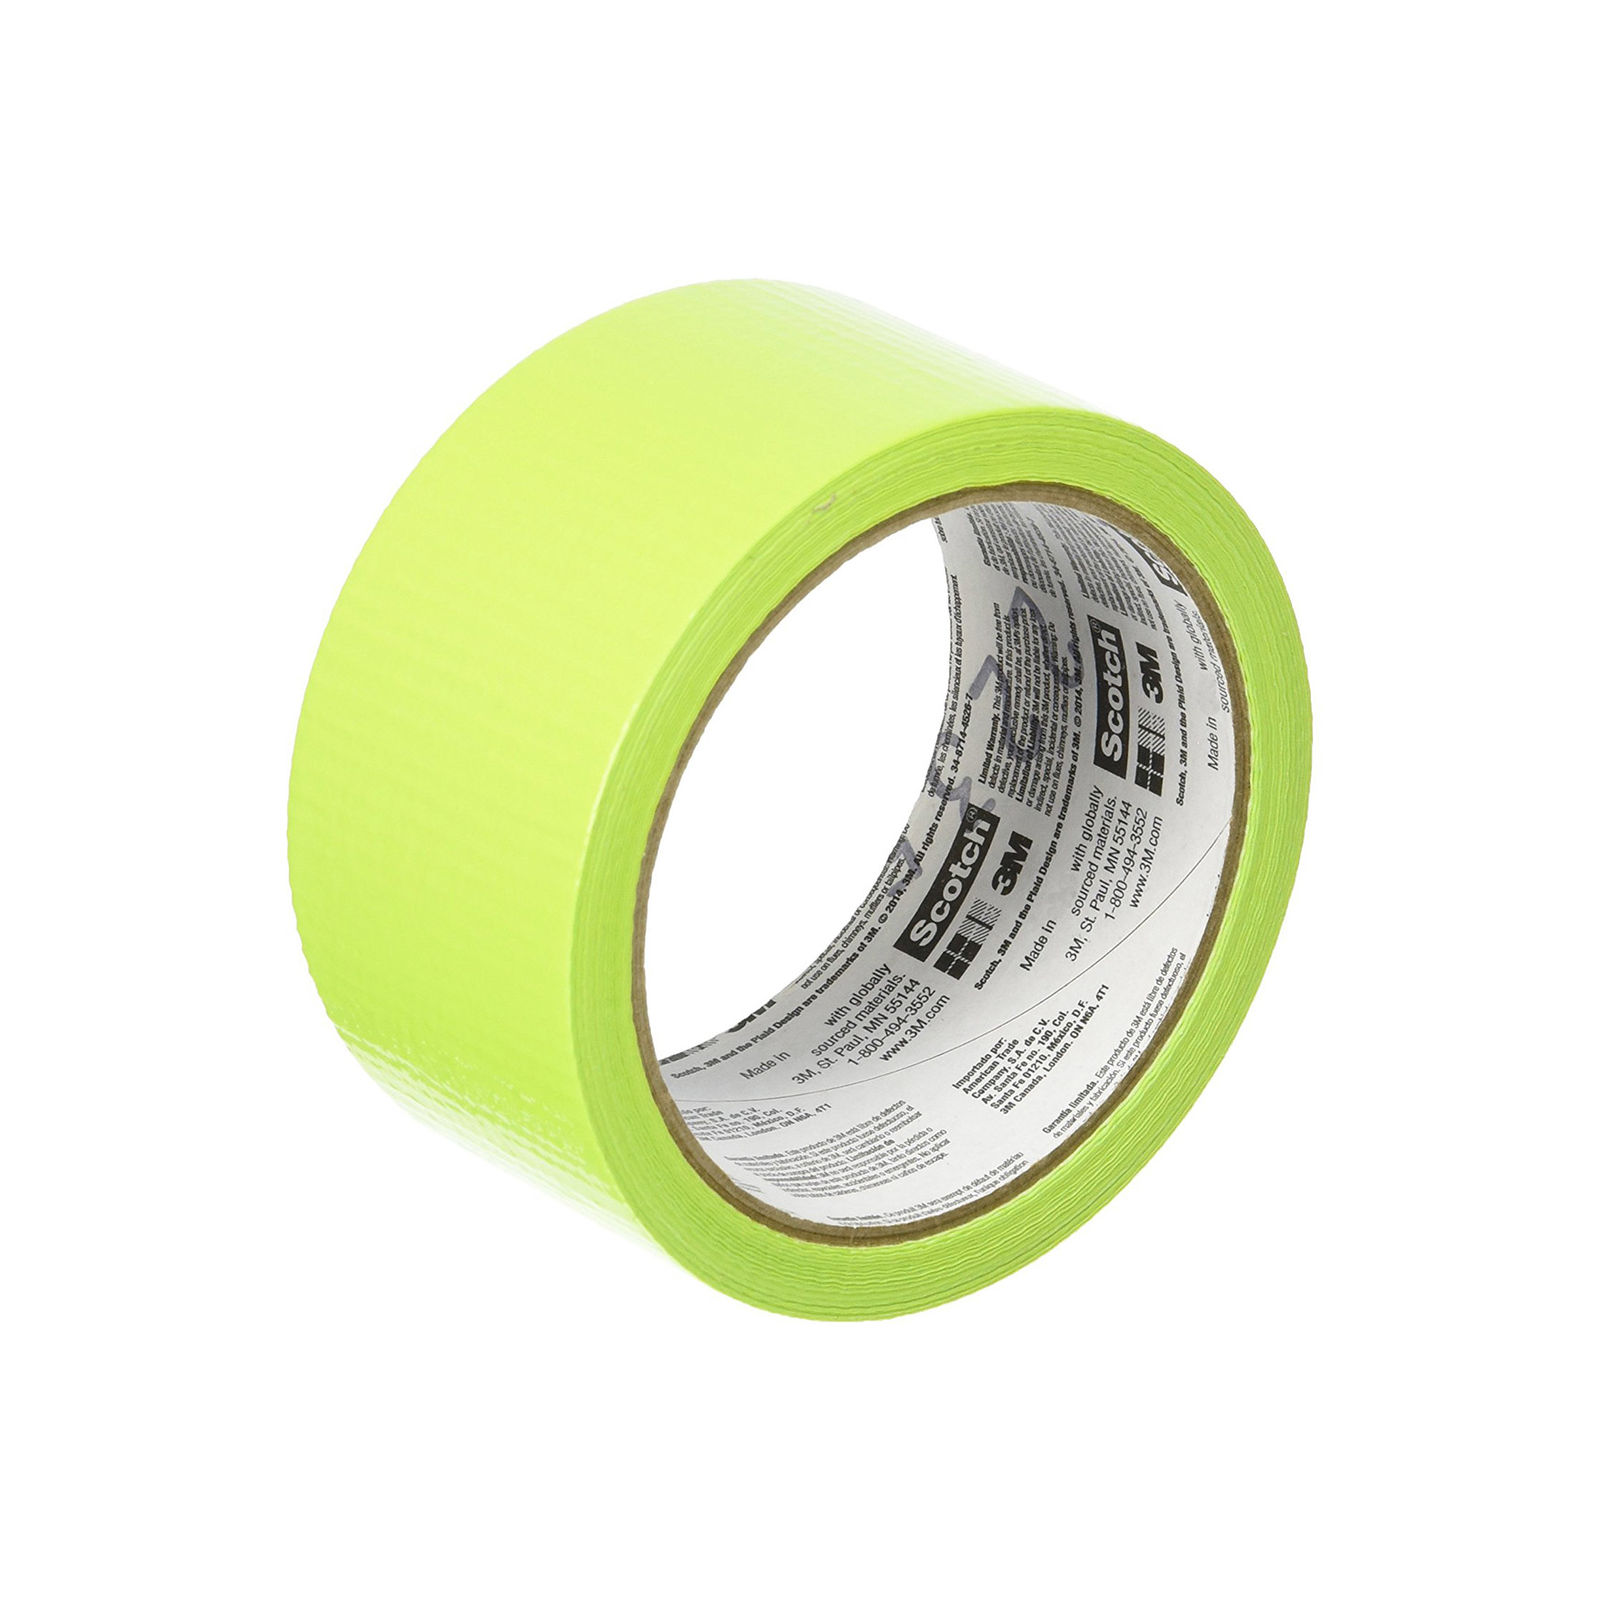 Scotch Duct Tape, Green Apple, 1.88-Inch by 20-Yard